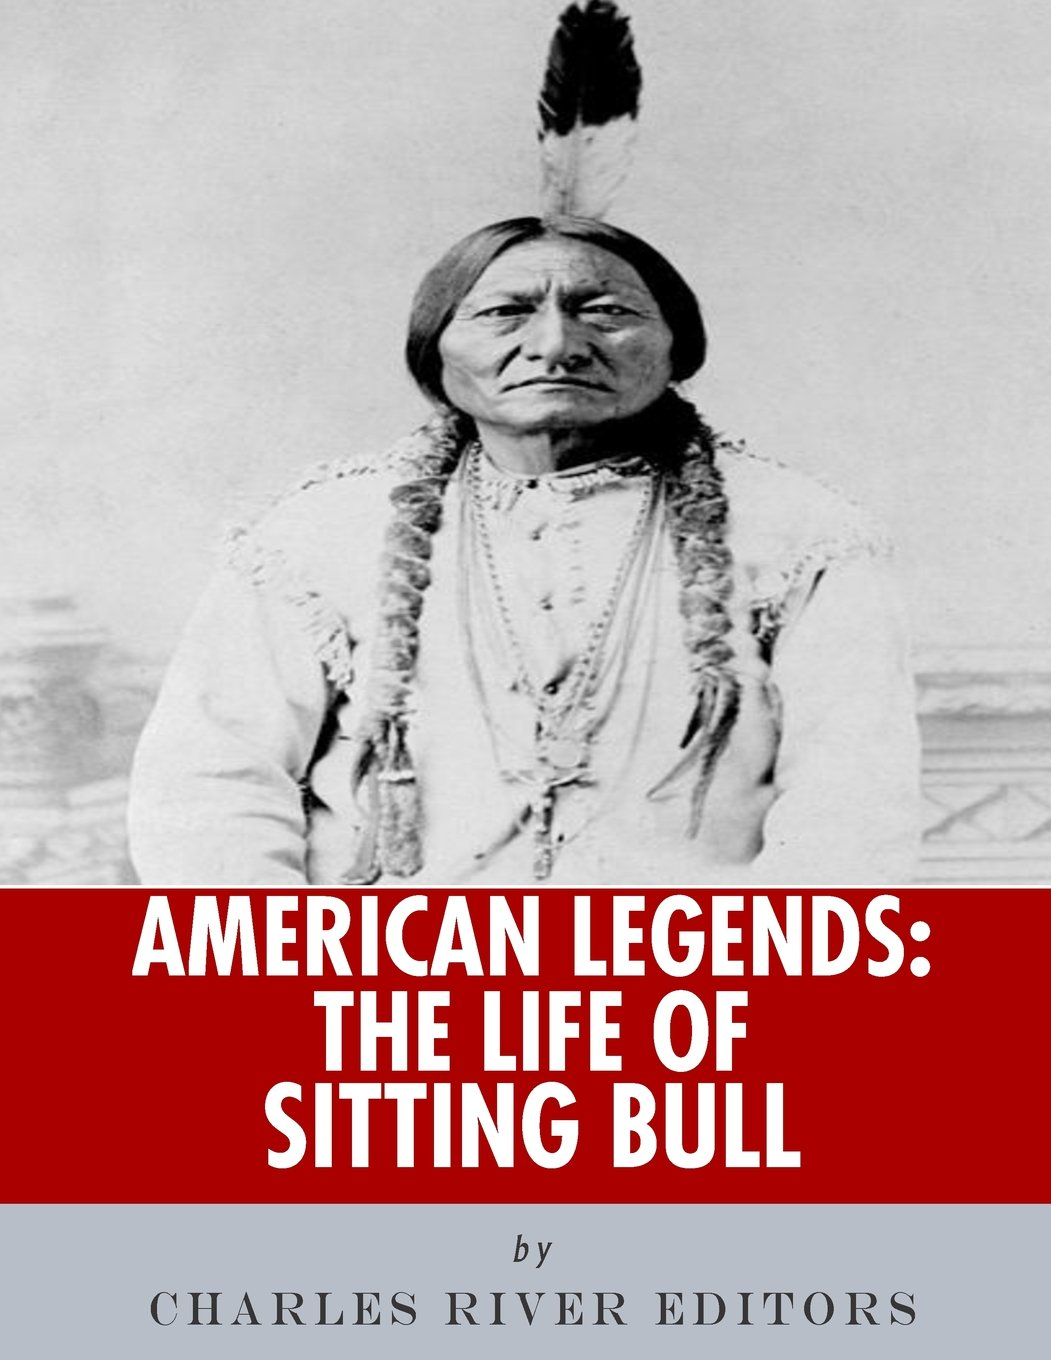 Sitting Bull: Selected full-text books and articles